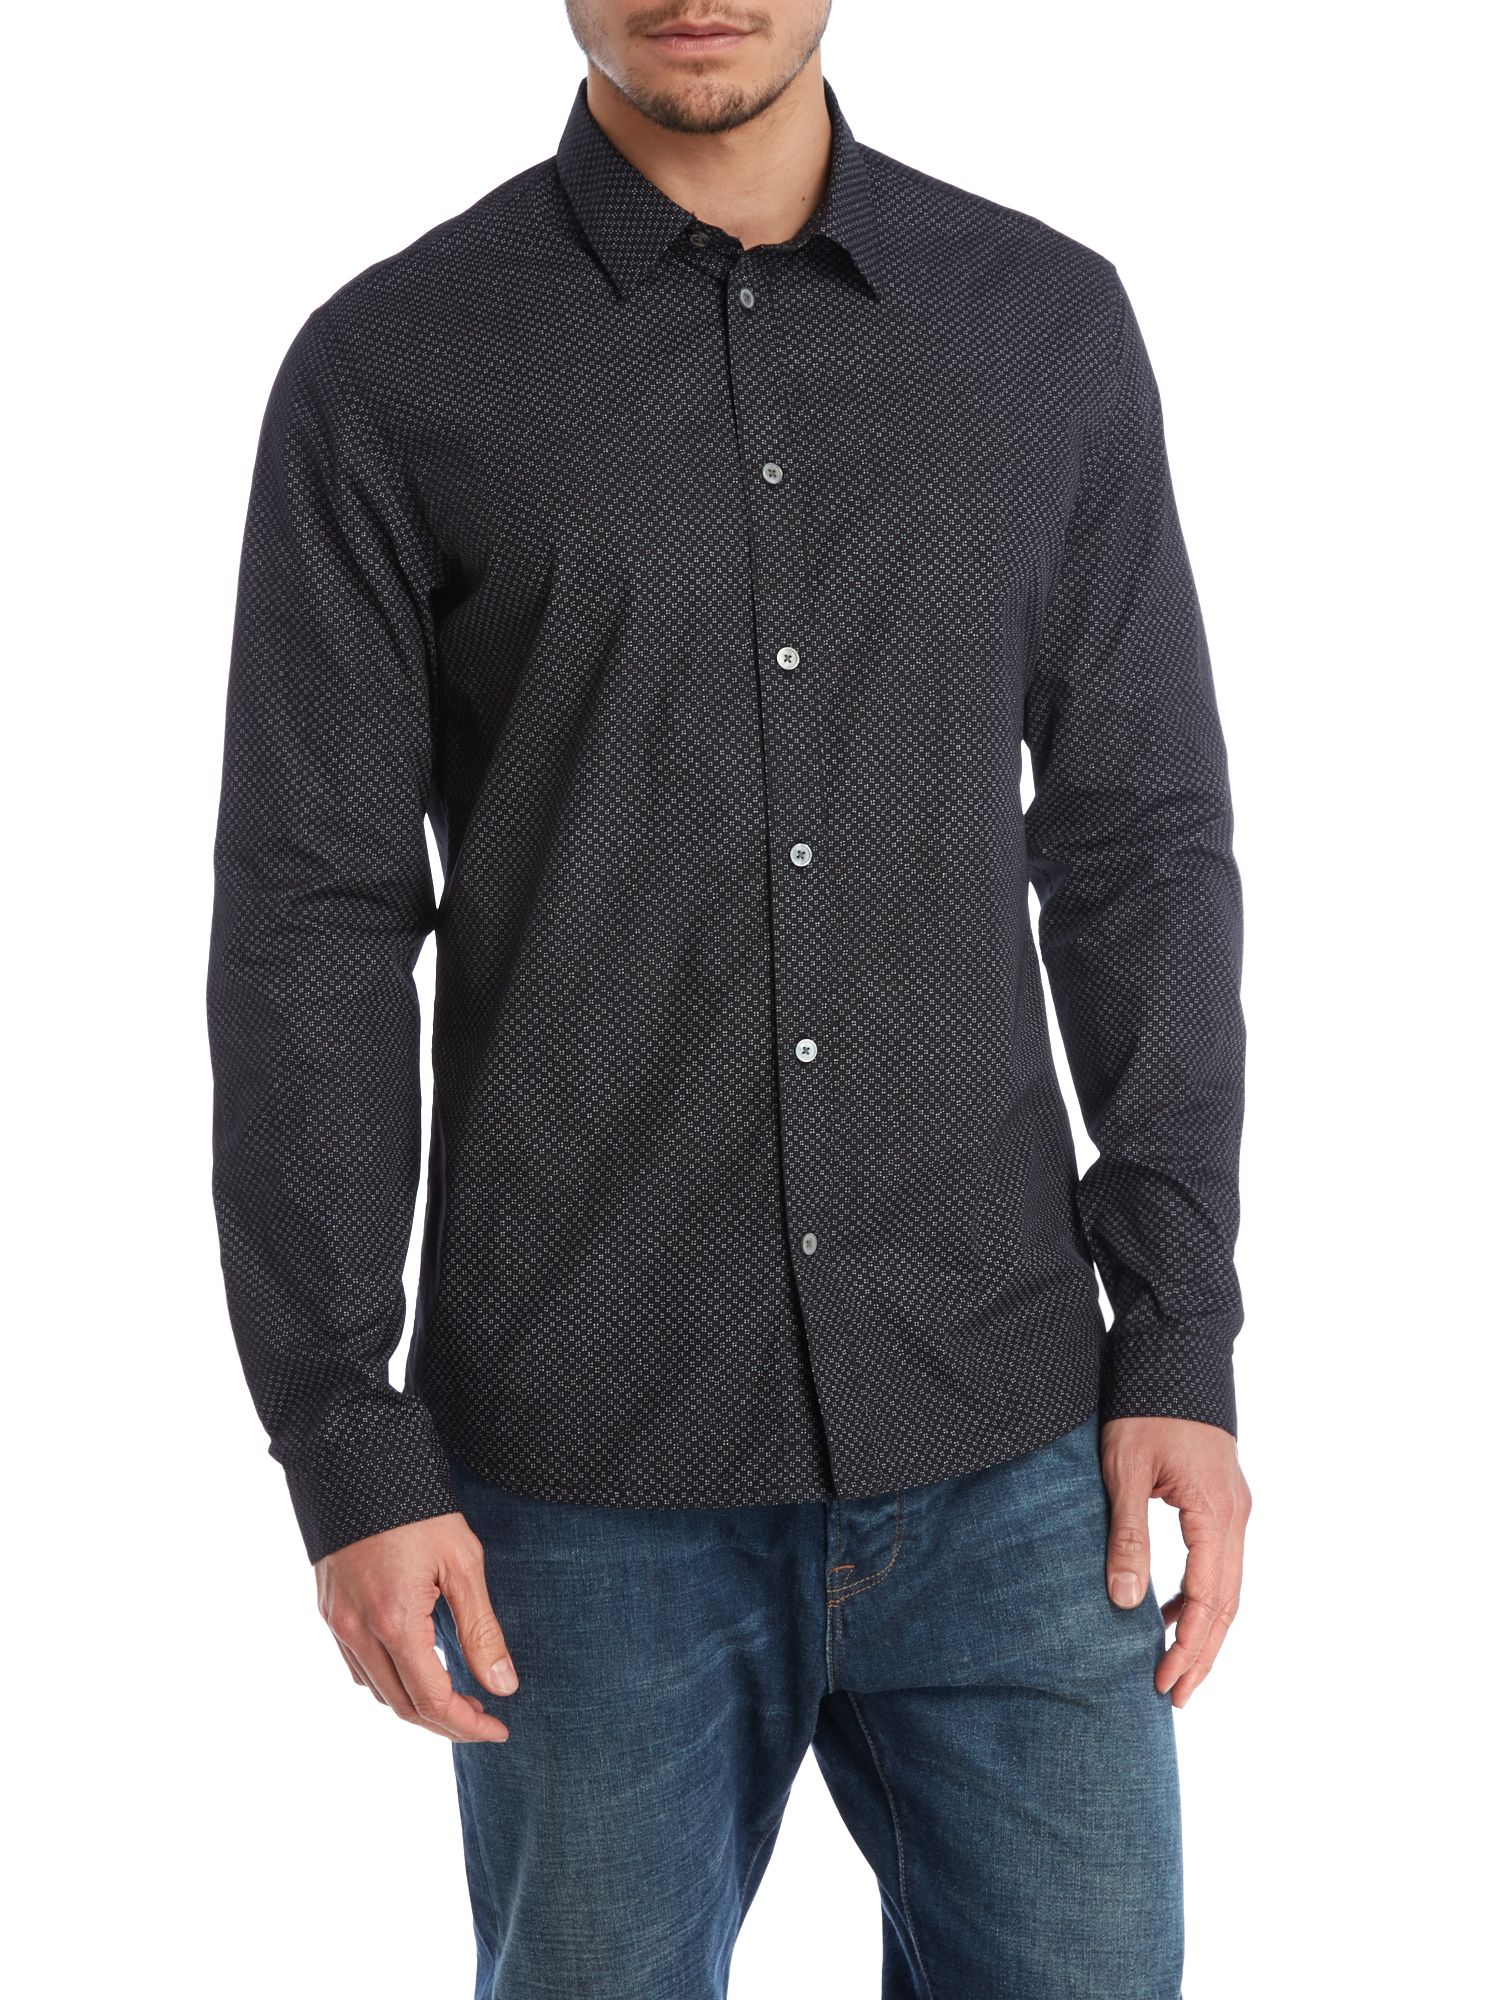 Long sleeve pin dot shirt